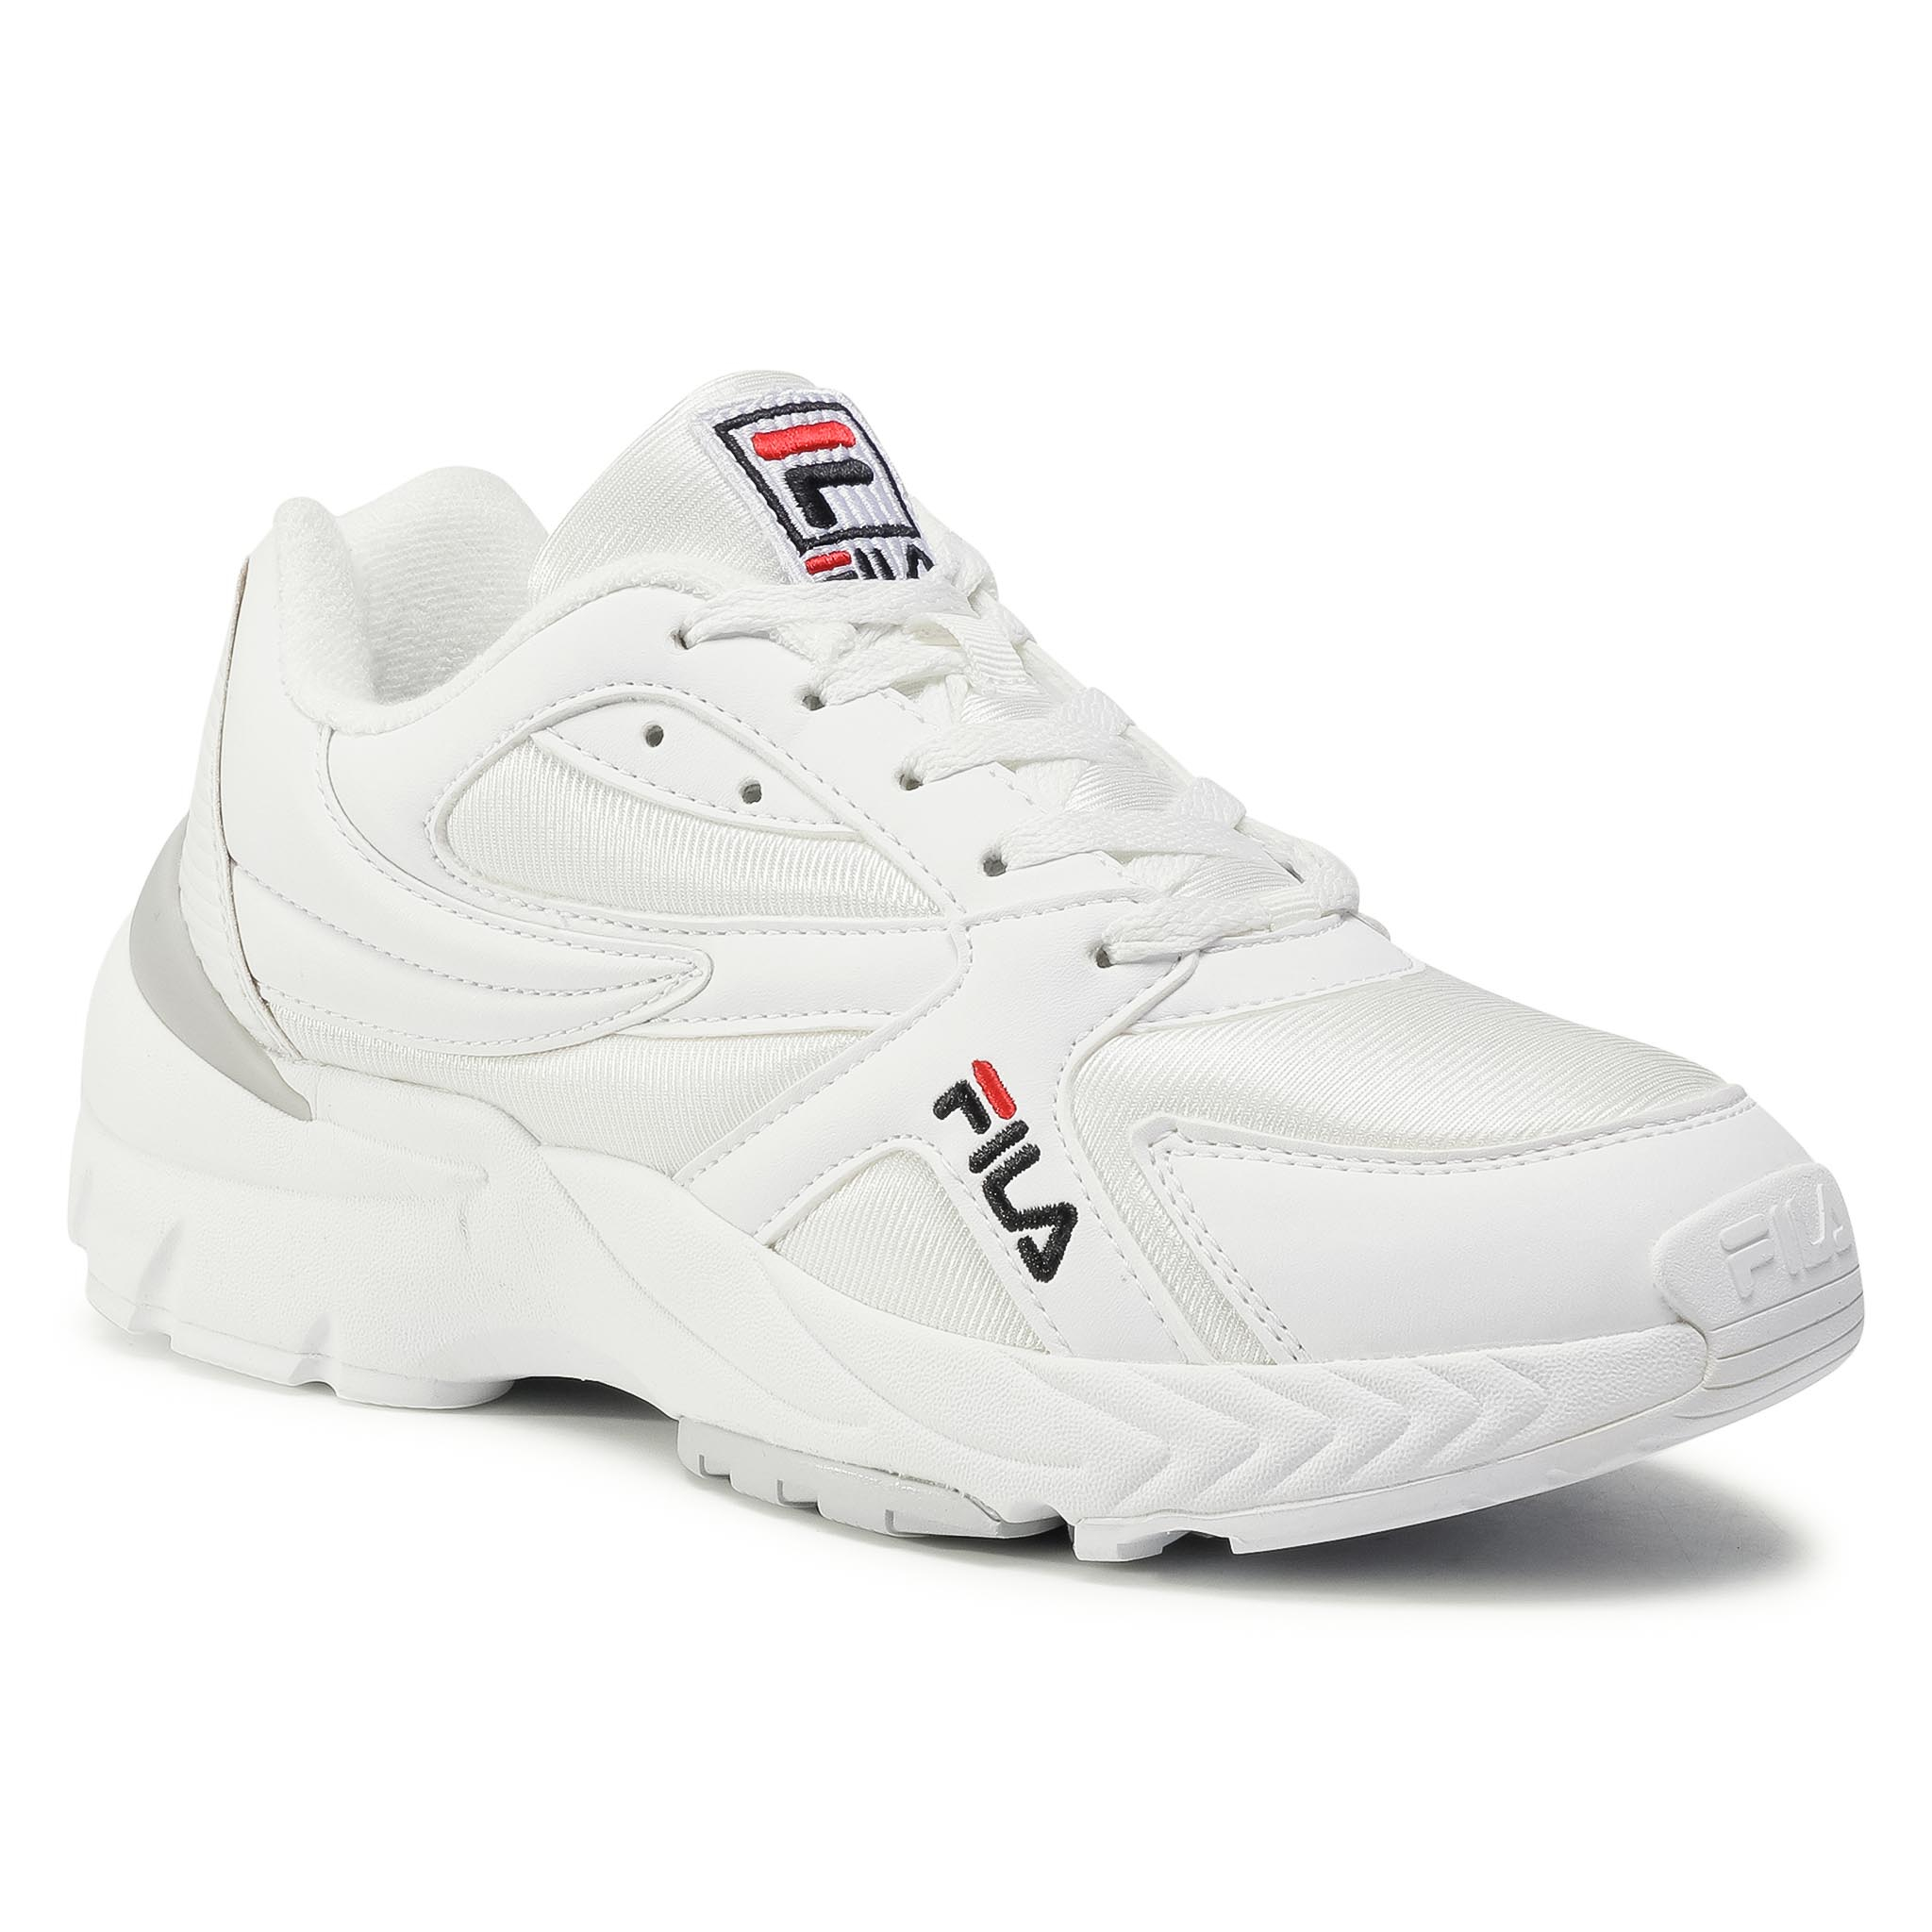 Sneaker Fila Sneakers FILA - Hyperwalker Low 1010832.84T White/Gray Violet